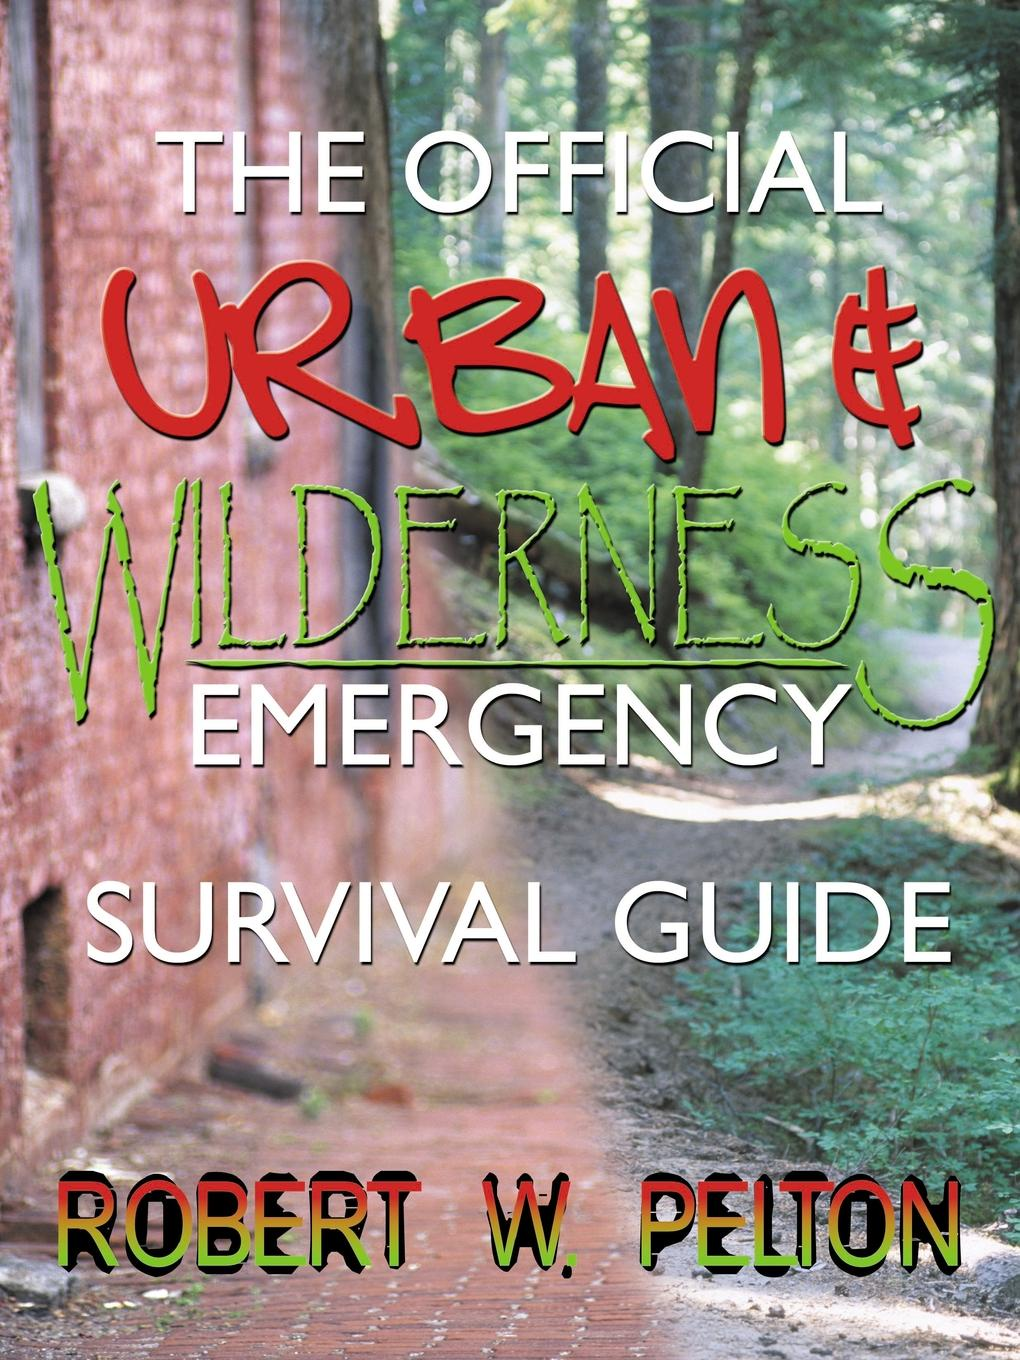 Robert W. Pelton The Official Urban and Wilderness Emergency Survival Guide